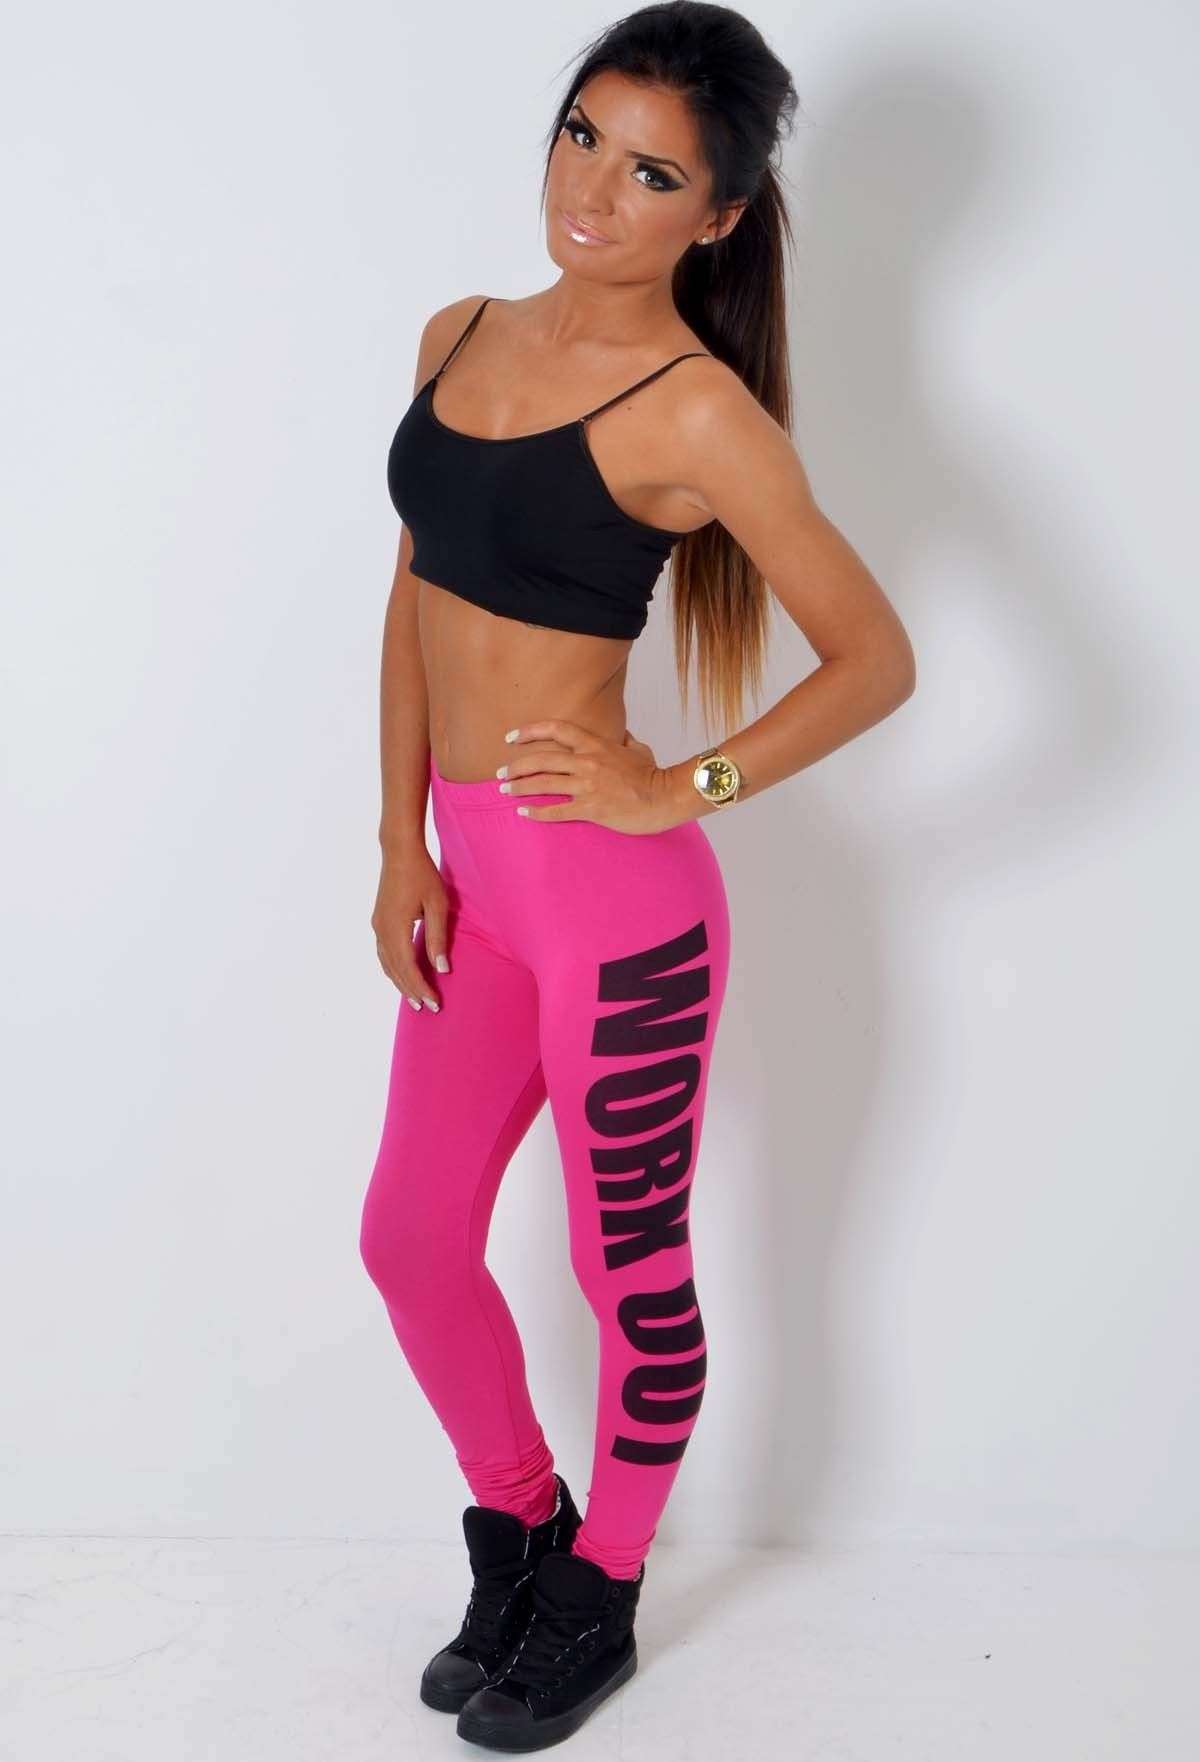 Pink Leggings Make You Look Sexy And Seductive : Pink And Black Gym Leggings